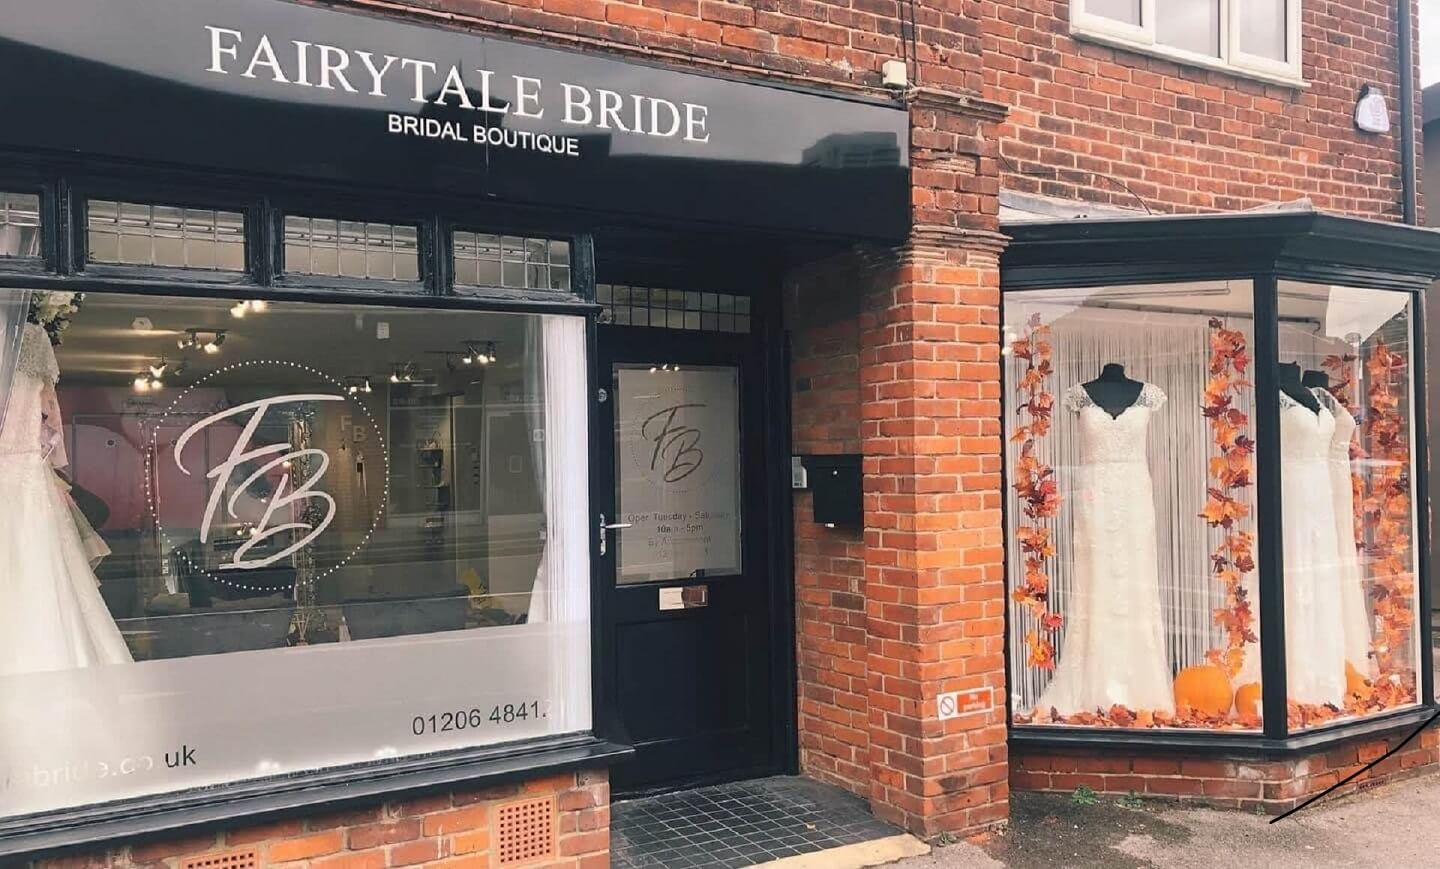 Wedding Dresses for Stowmarket Brides